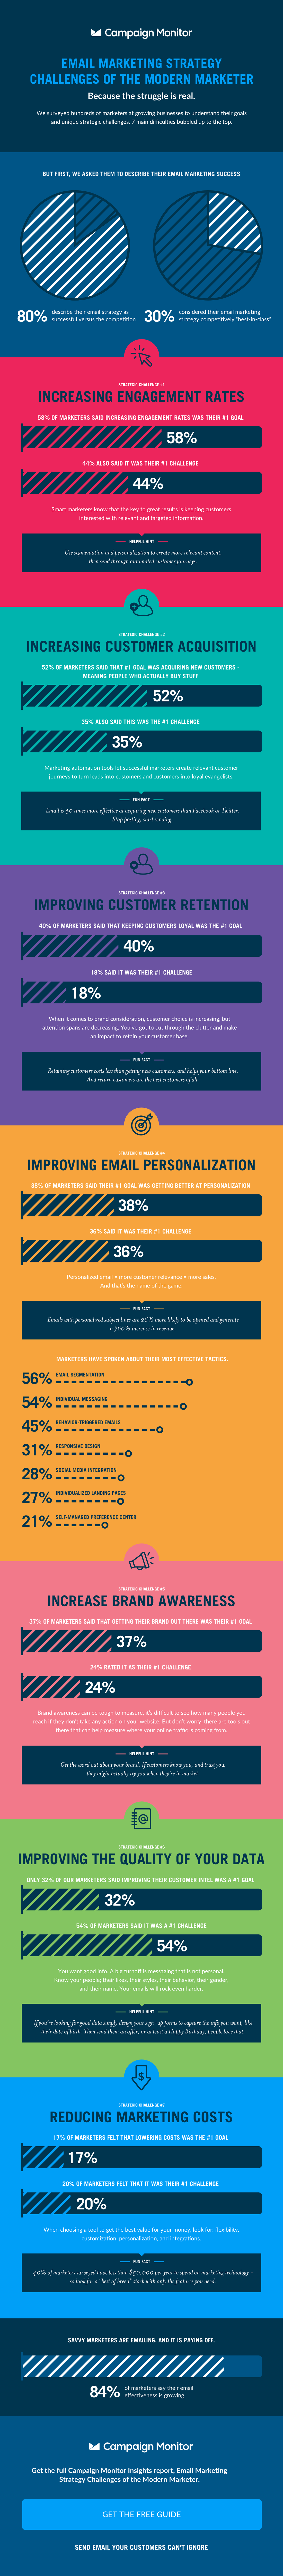 Email-Strategies-FINAL Number 2 - 3864